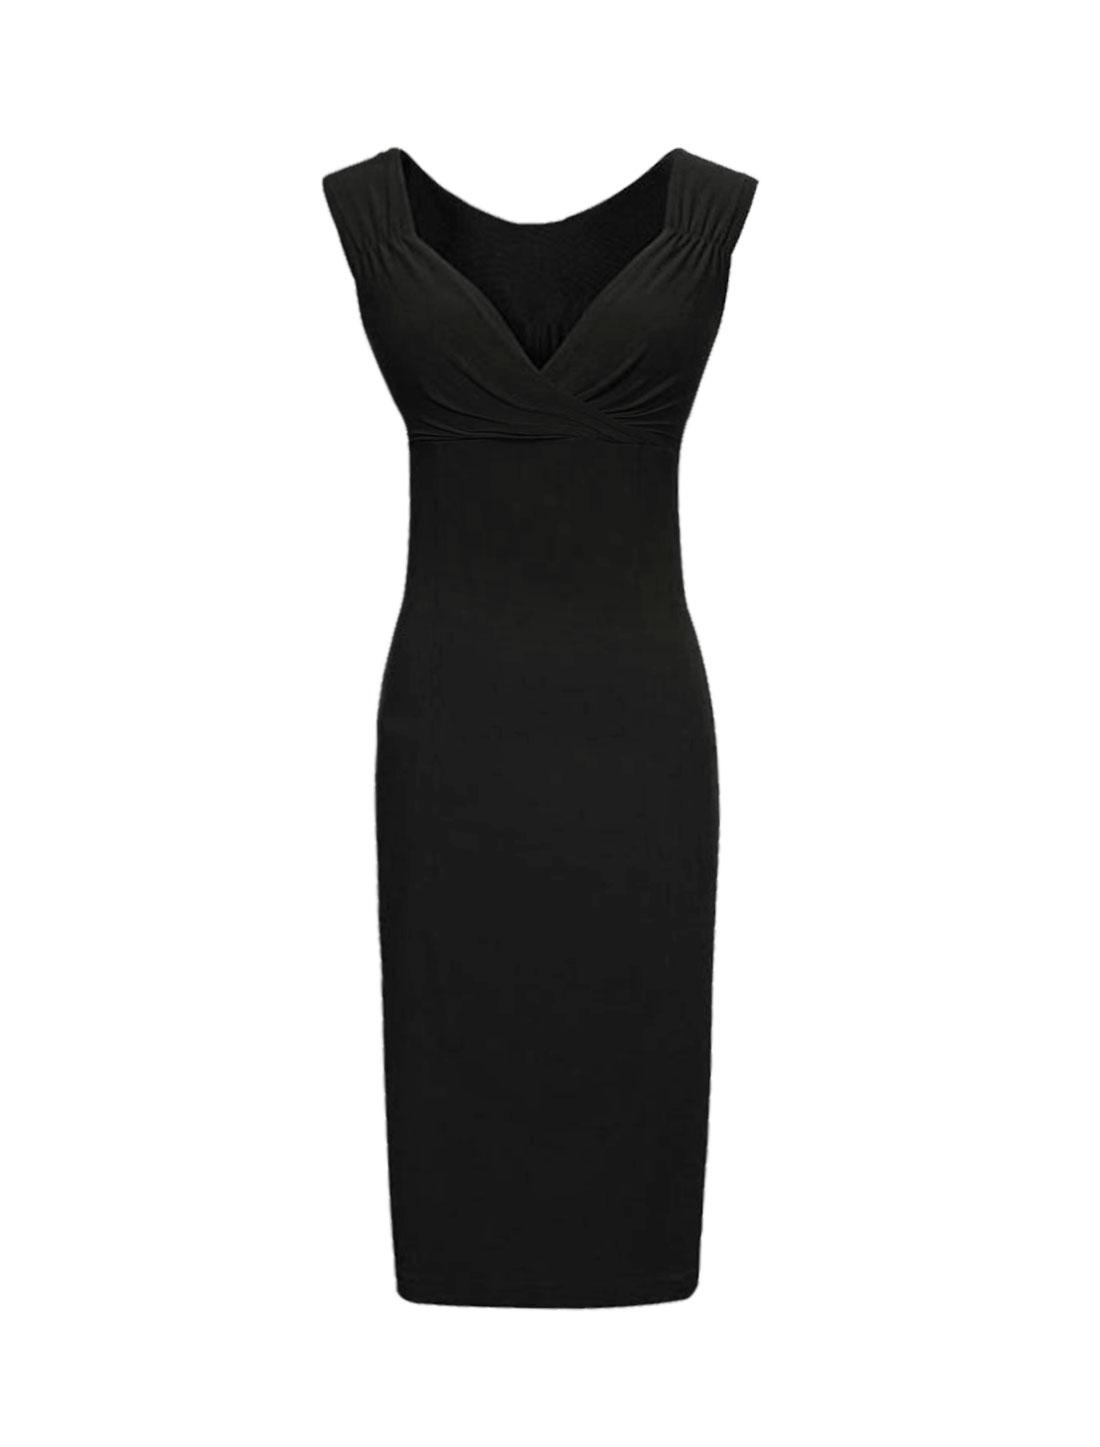 Women Crossover V Neck Ruched Sleeveless Pencil Dress Black XL